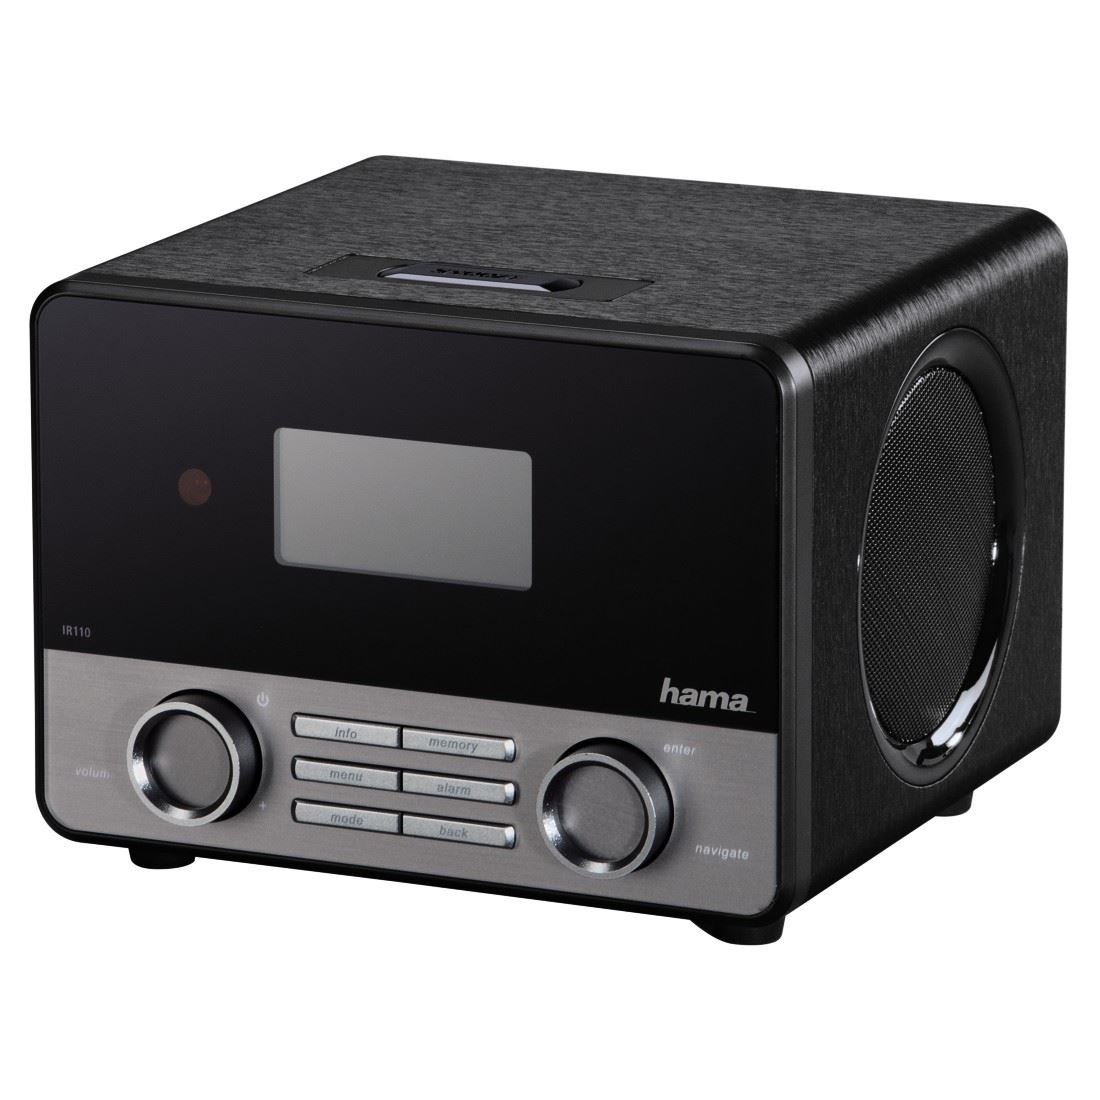 Electrical Appliances Online picture Hama DIR3100 Internet Radio